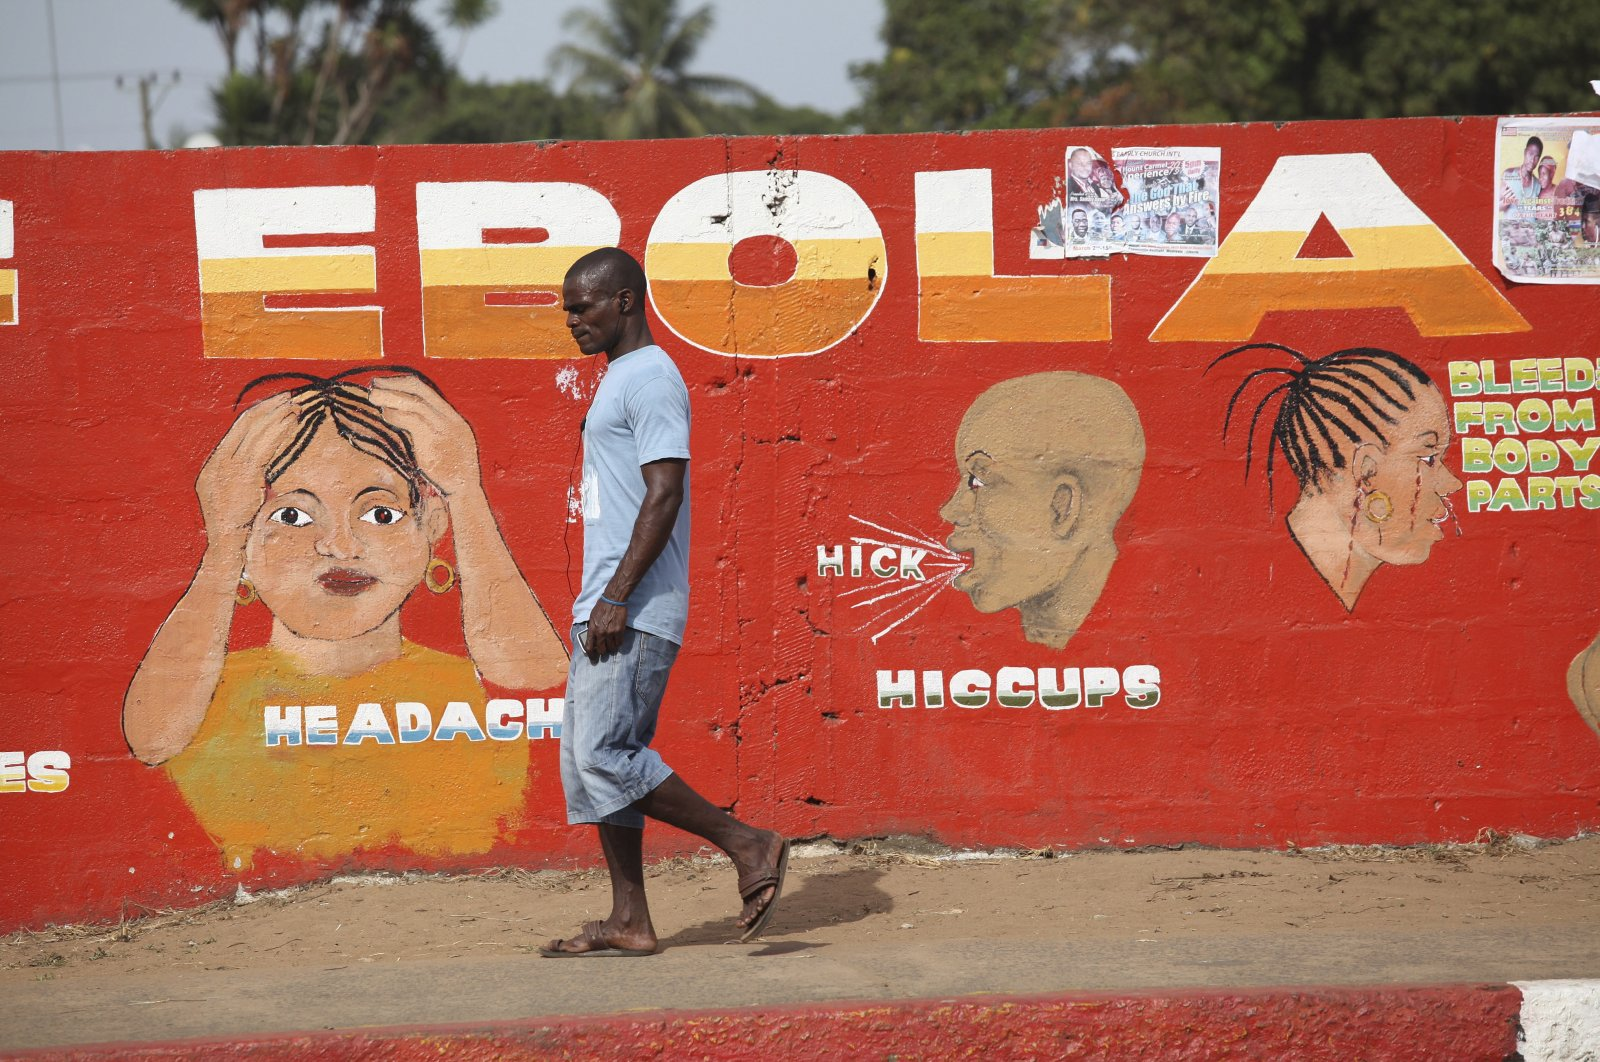 A Liberian man walks past an Ebola awareness painting on a wall in downtown Monrovia, Liberia, March 22, 2015. (EPA Photo)